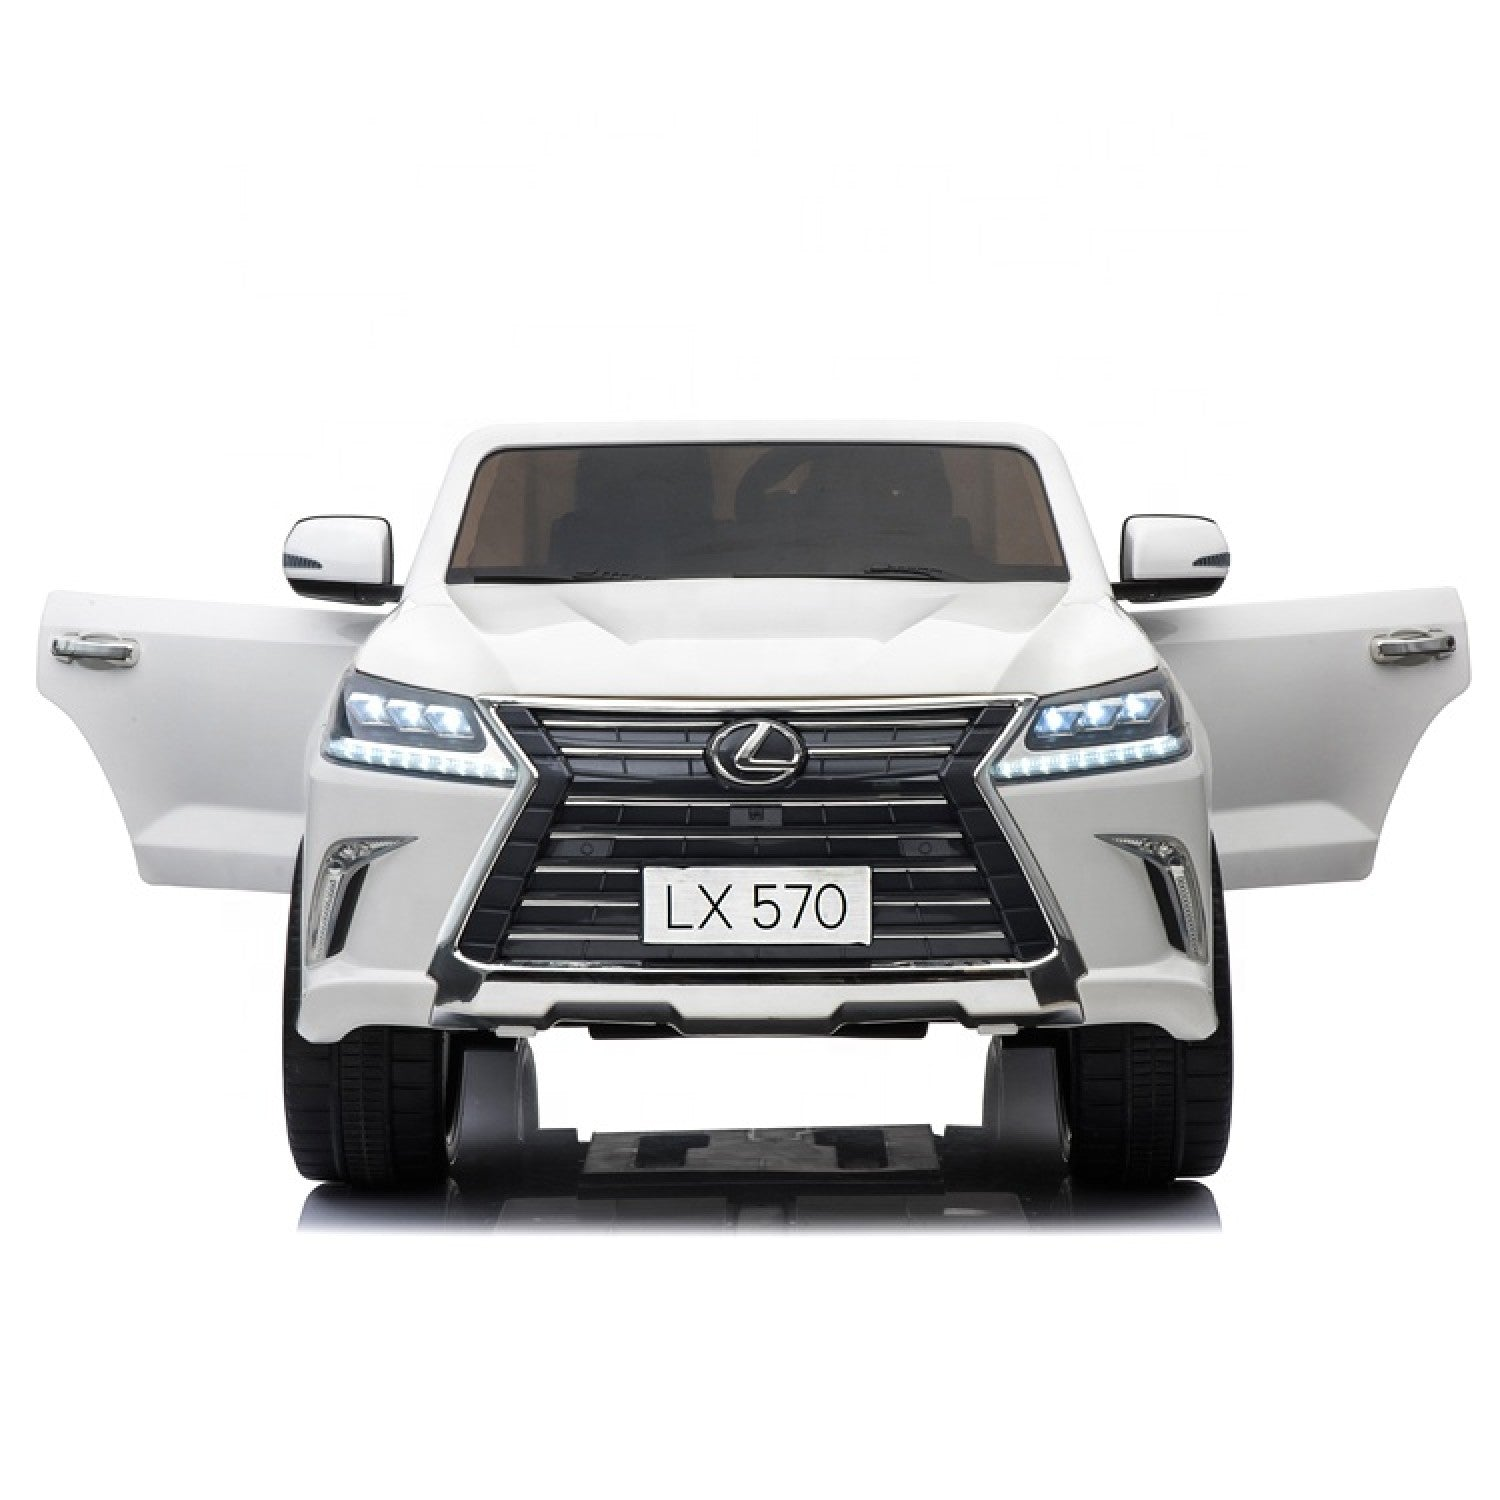 Licensed Lexus LX 570 4X4 SUV by RAFPLAY